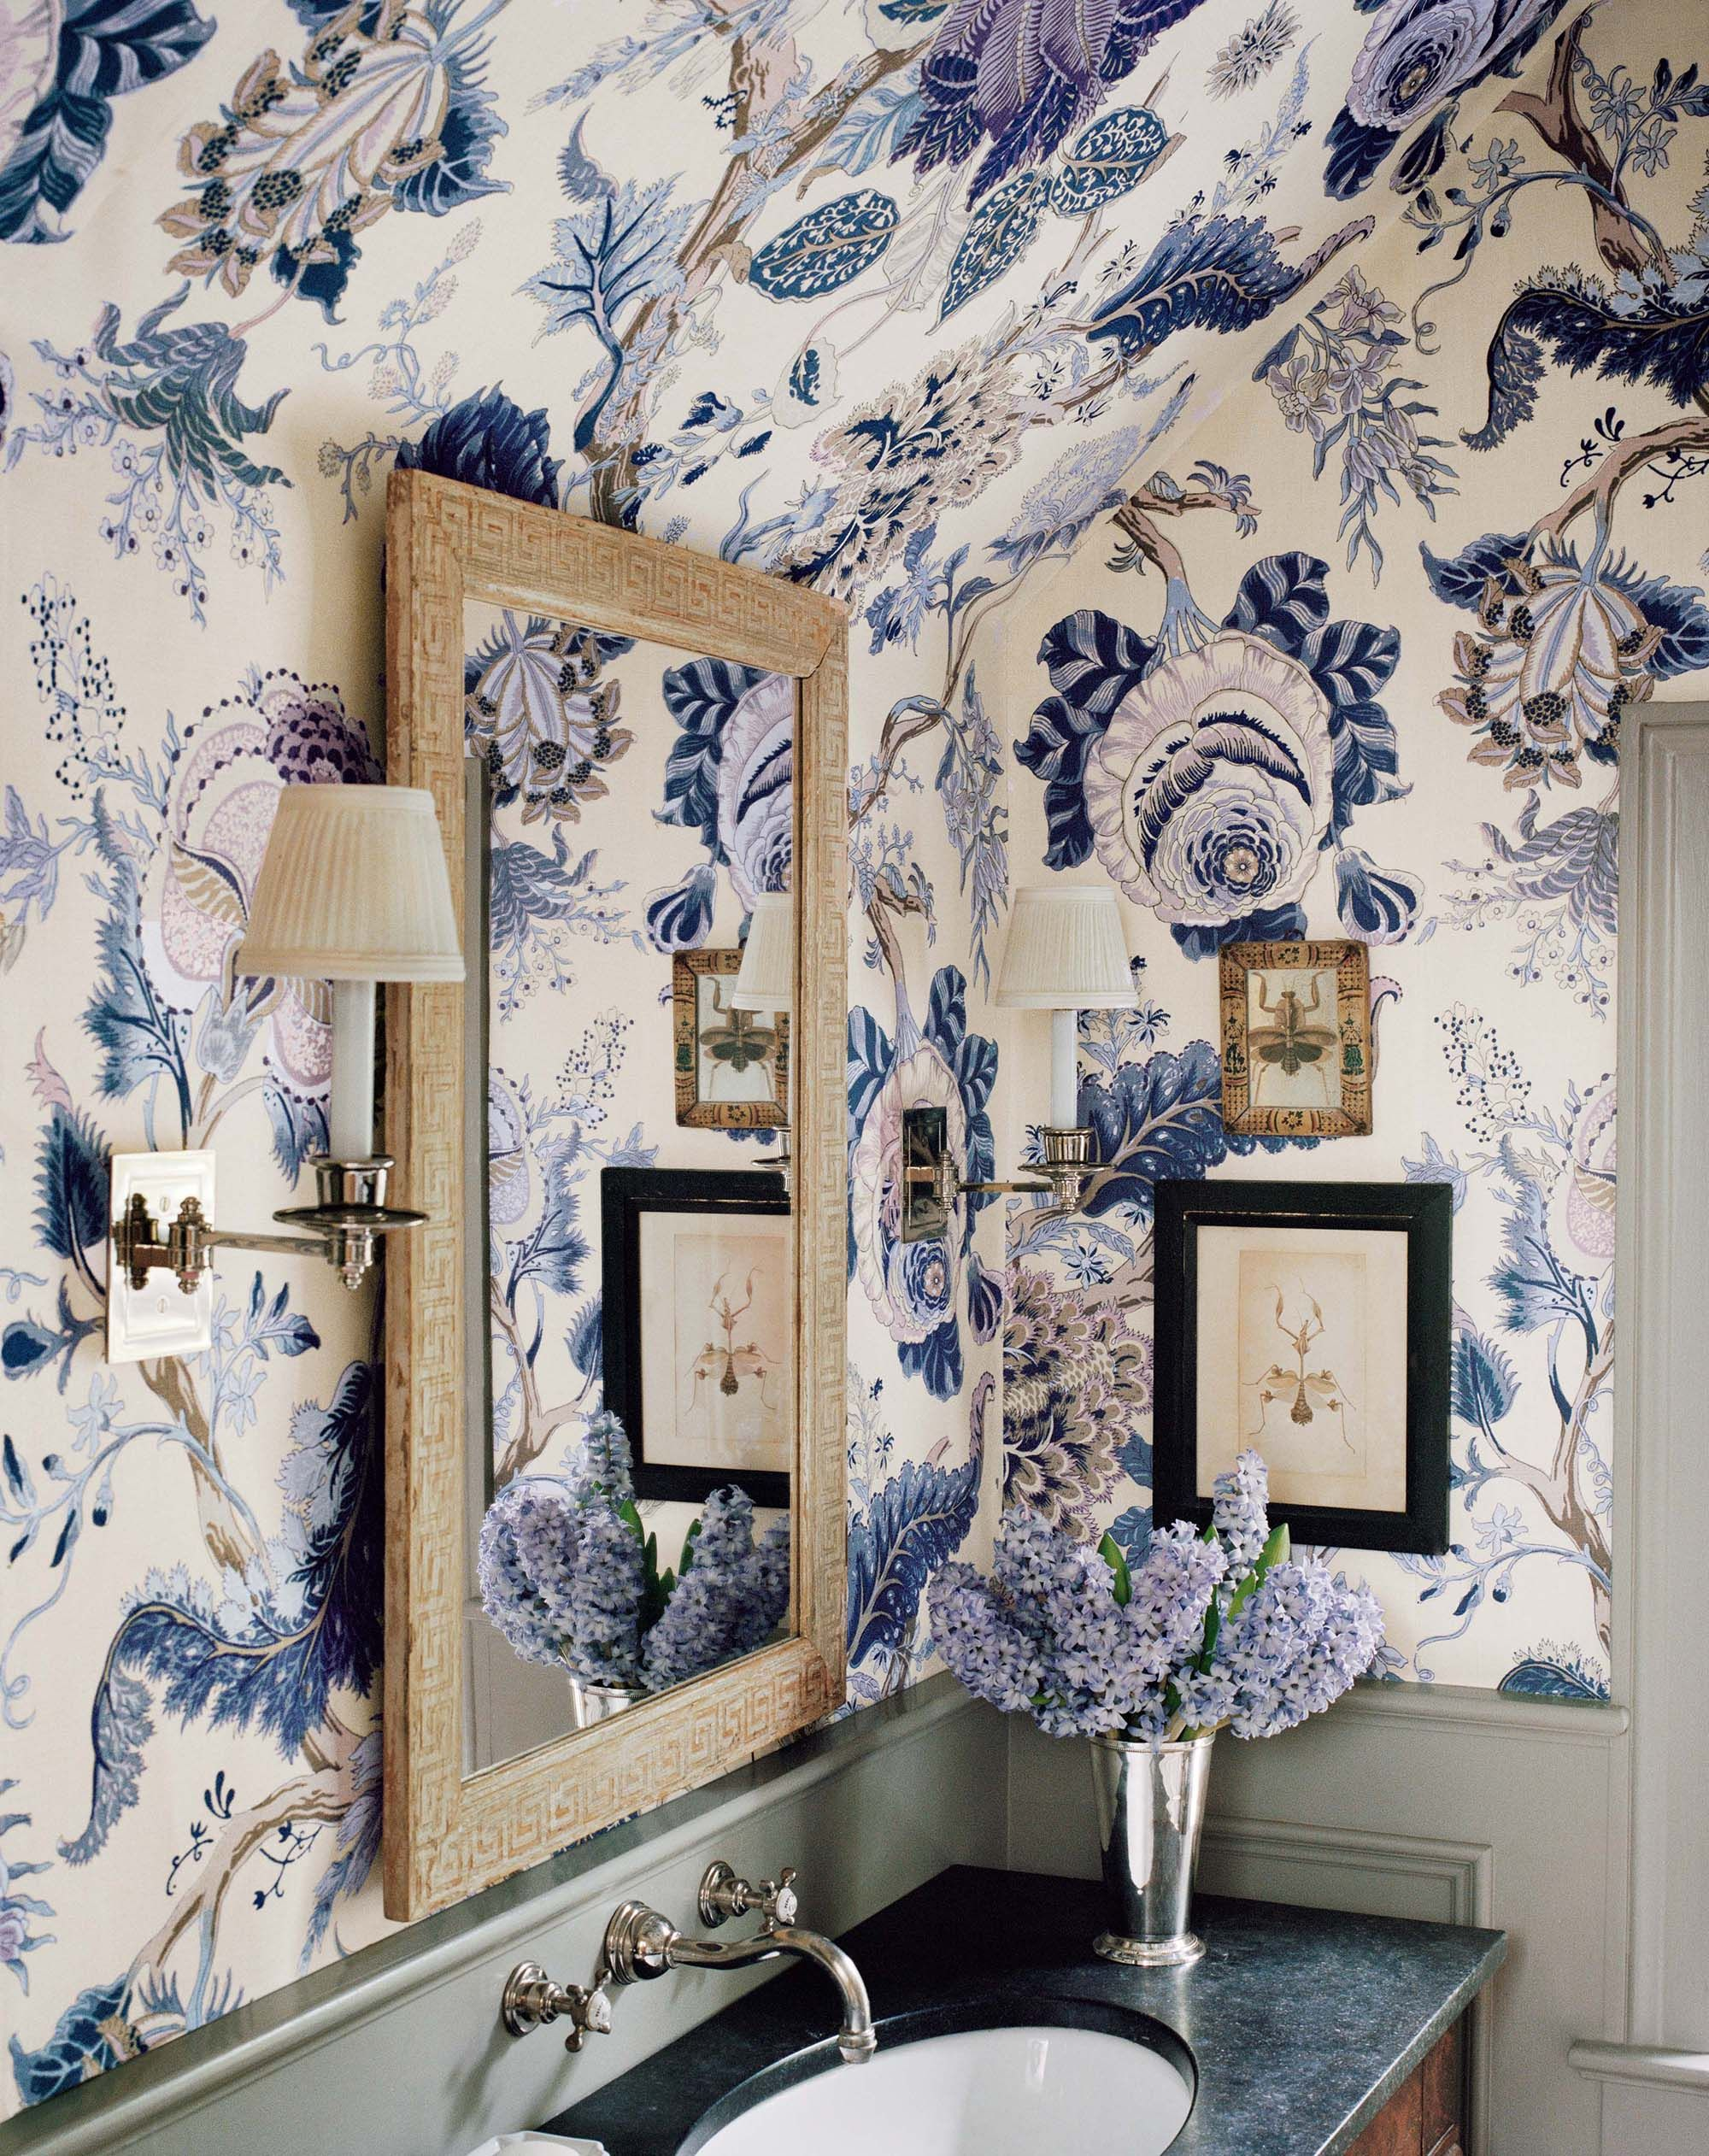 indian arbe in hyacinth 125th anniversary collection indian arbe in hyacinth 125th anniversary collection schumacher for more inspiration design floral print wallpaperwallpaper decorbathroom